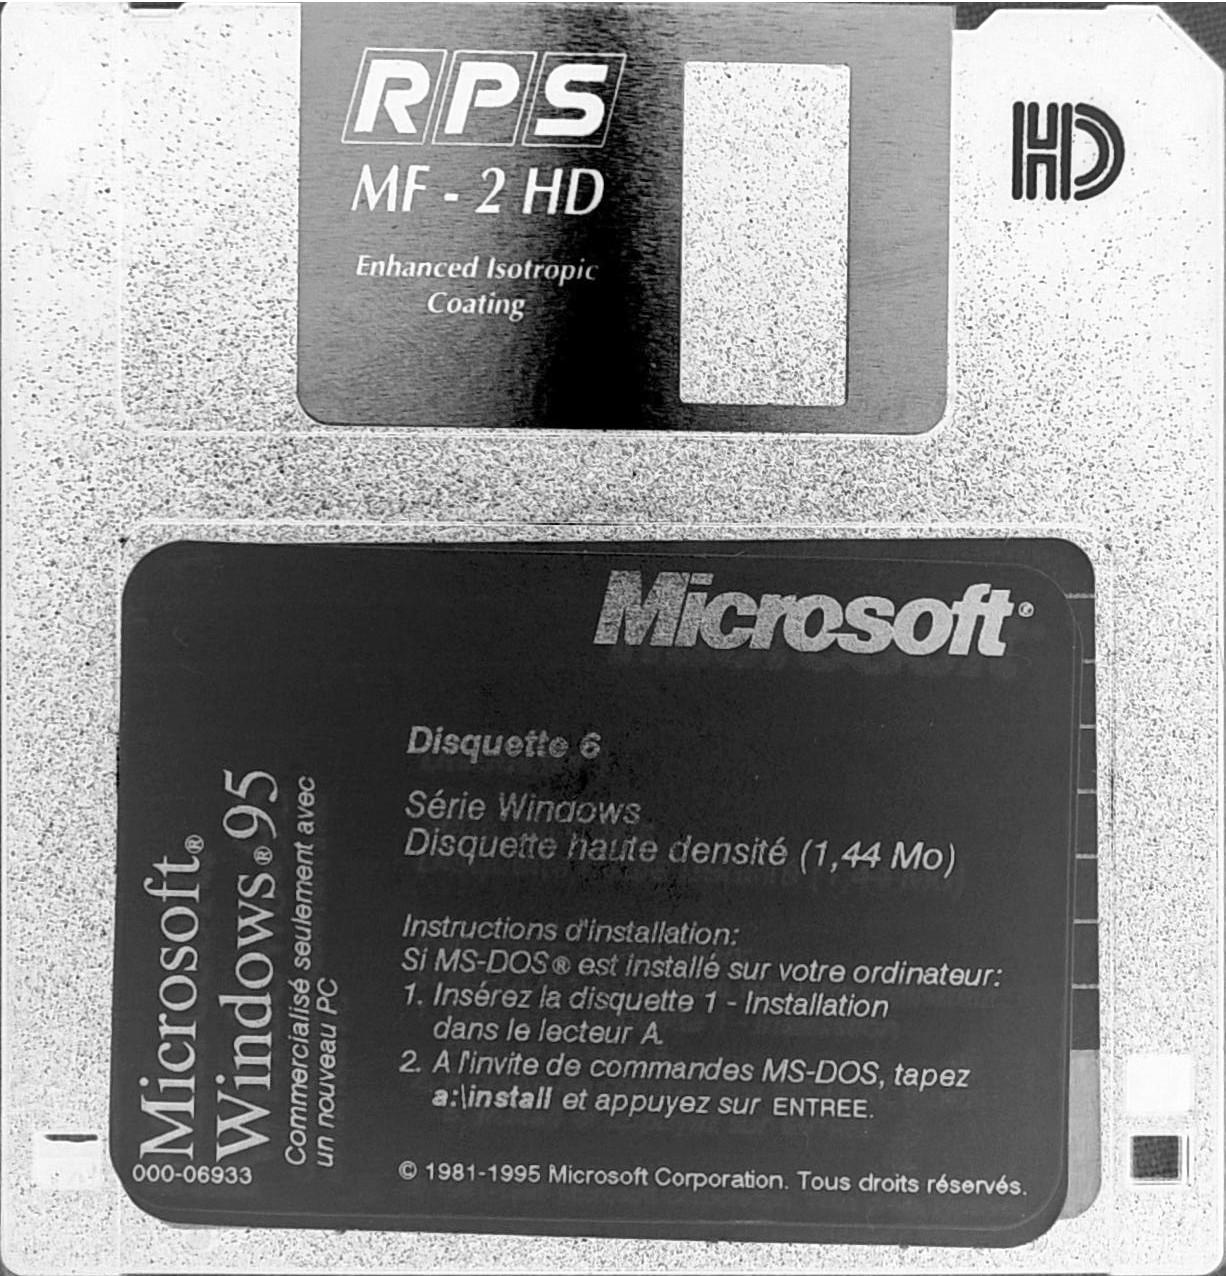 View topic - [Offer/Ref/Rare] The Original Windows 95 30 floppy